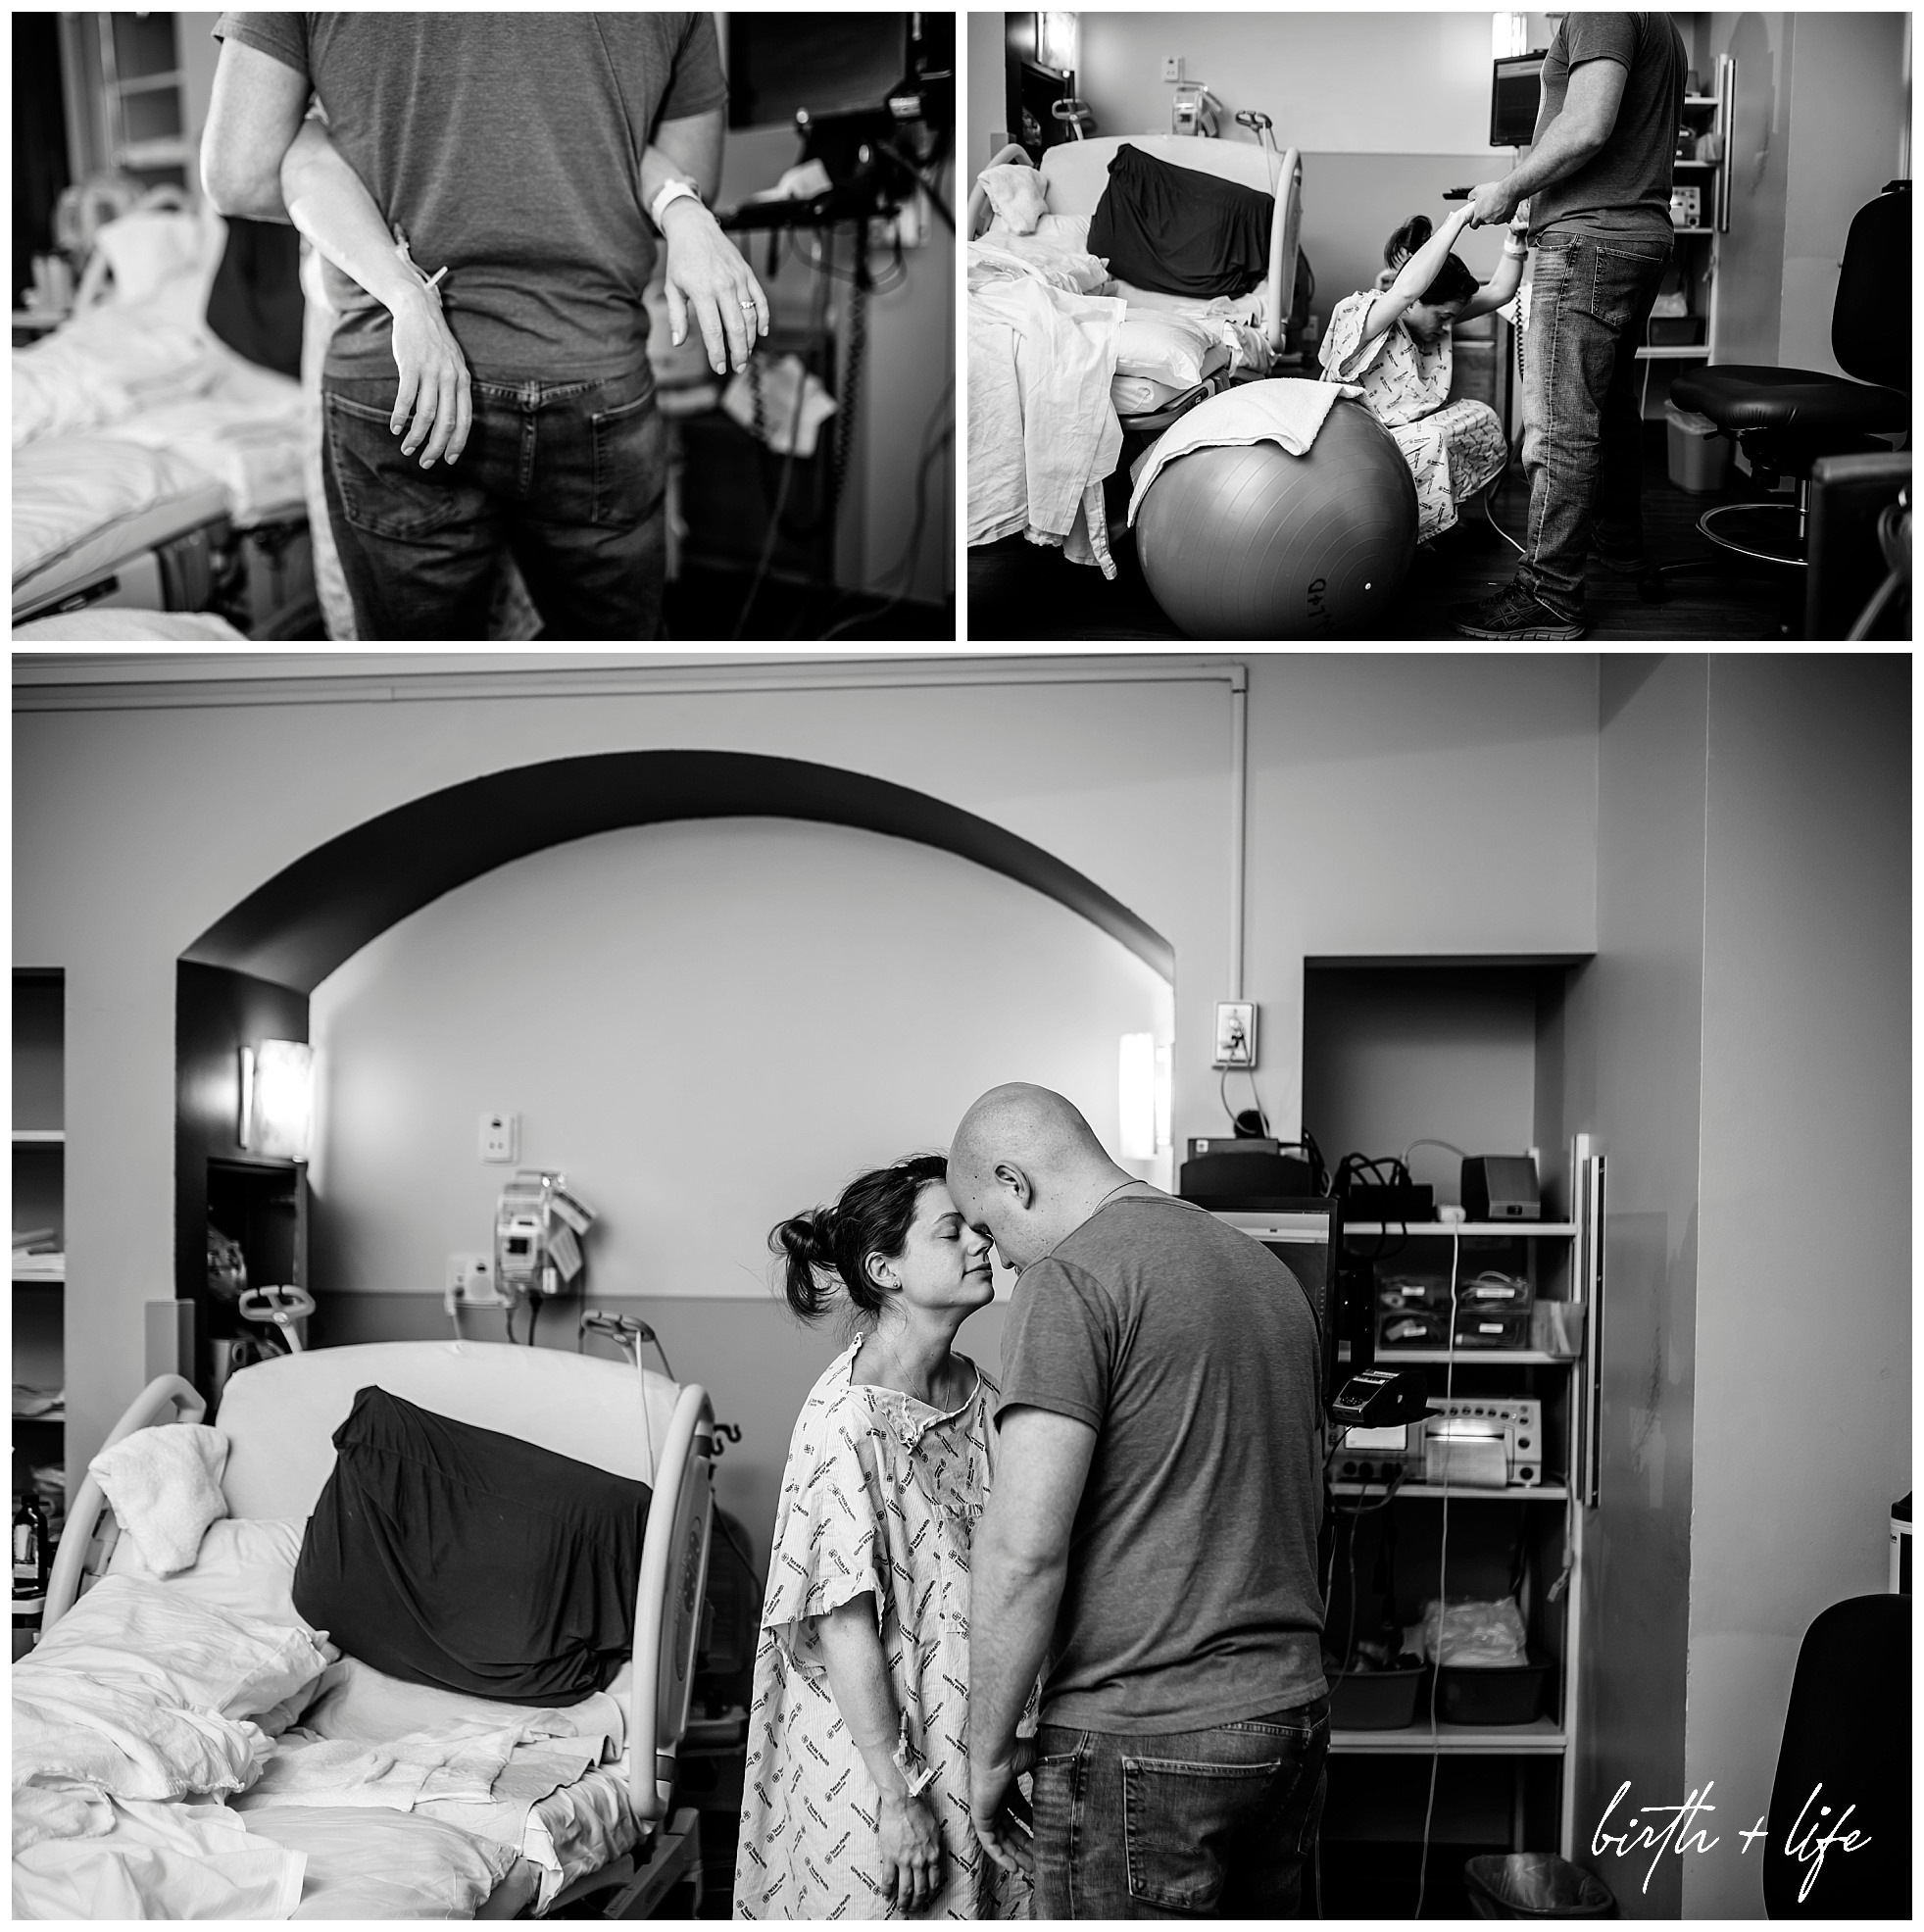 dfw-birth-and-life-photography-family-photojournalism-documentary-birth-storyacclaim-midwives-clark010.jpg